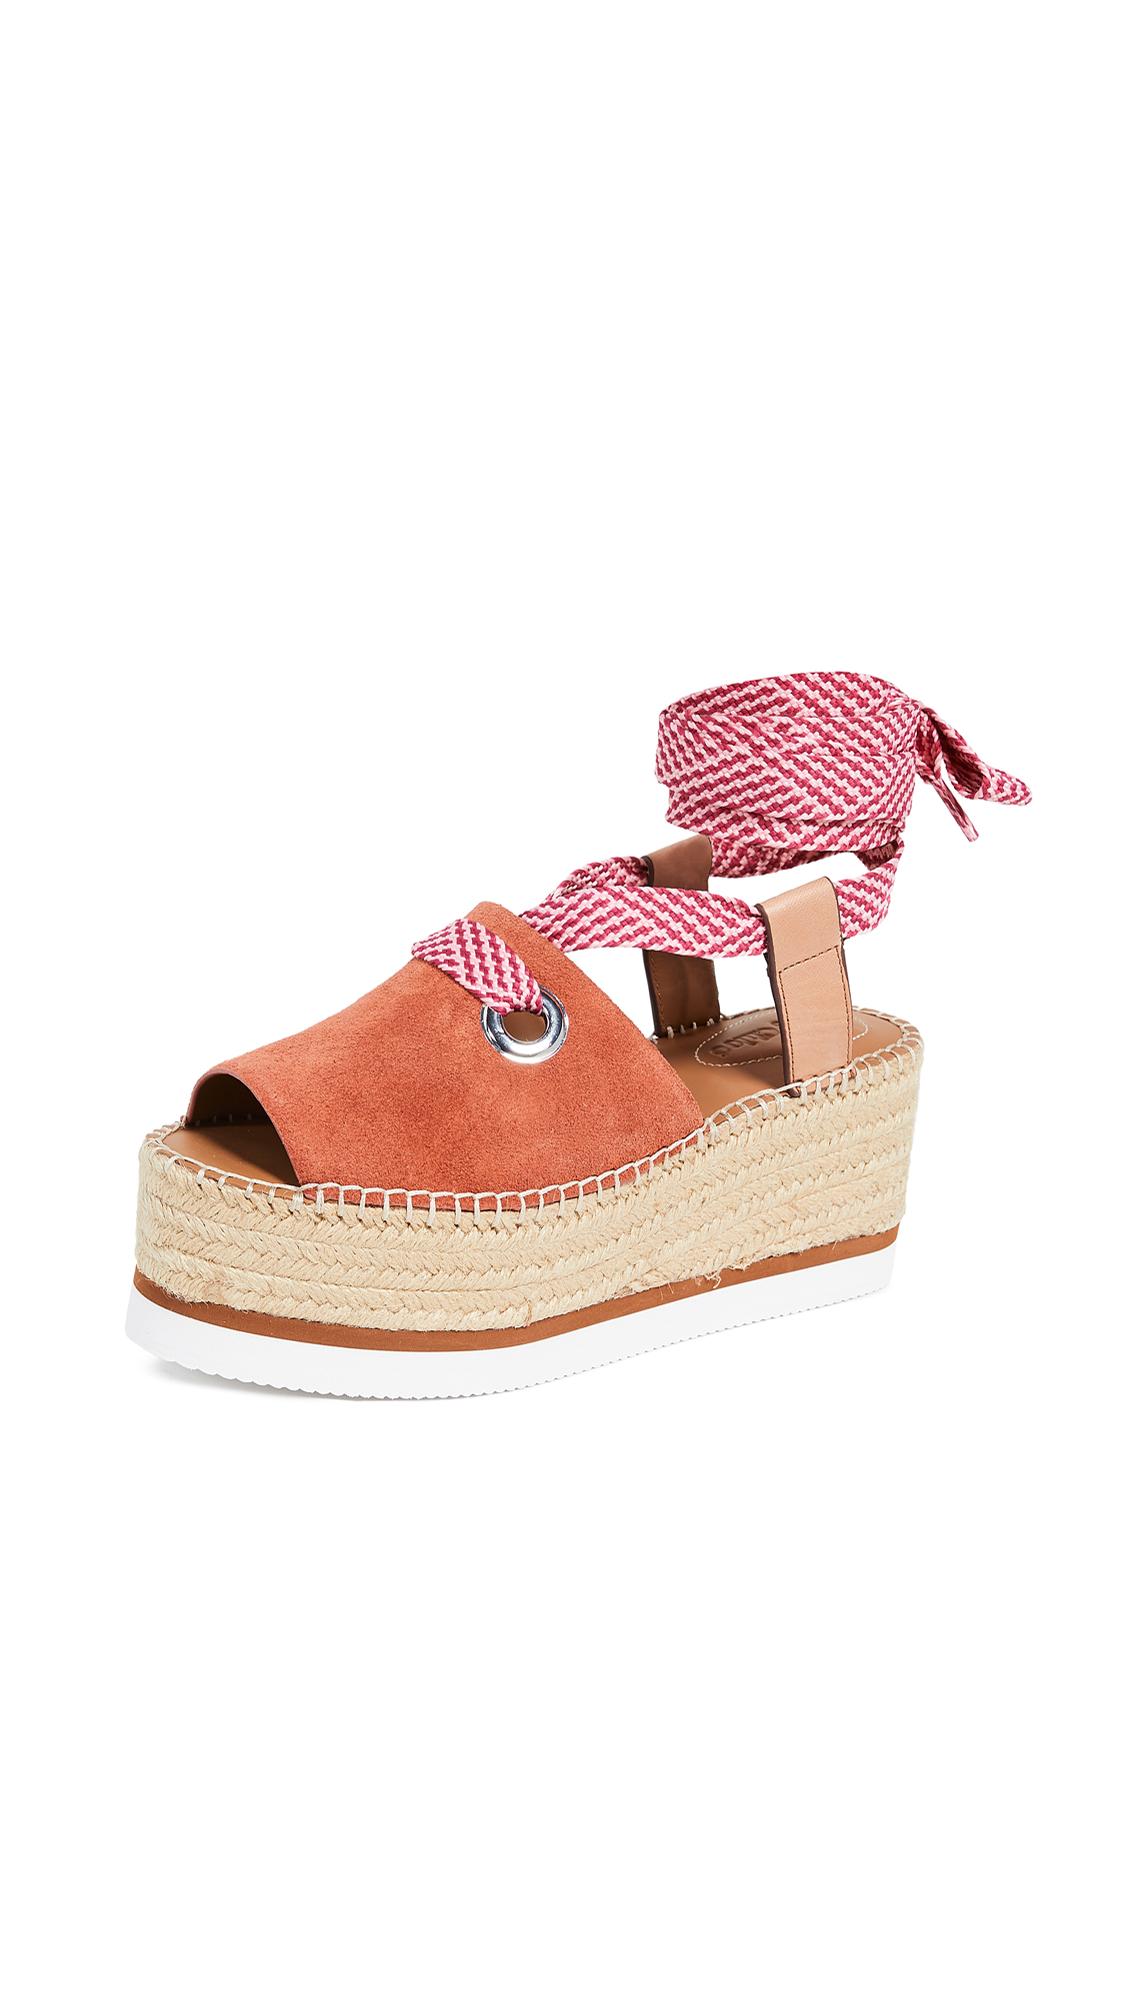 See by Chloe Glyn Amber Lace Up Espadrilles - Phard